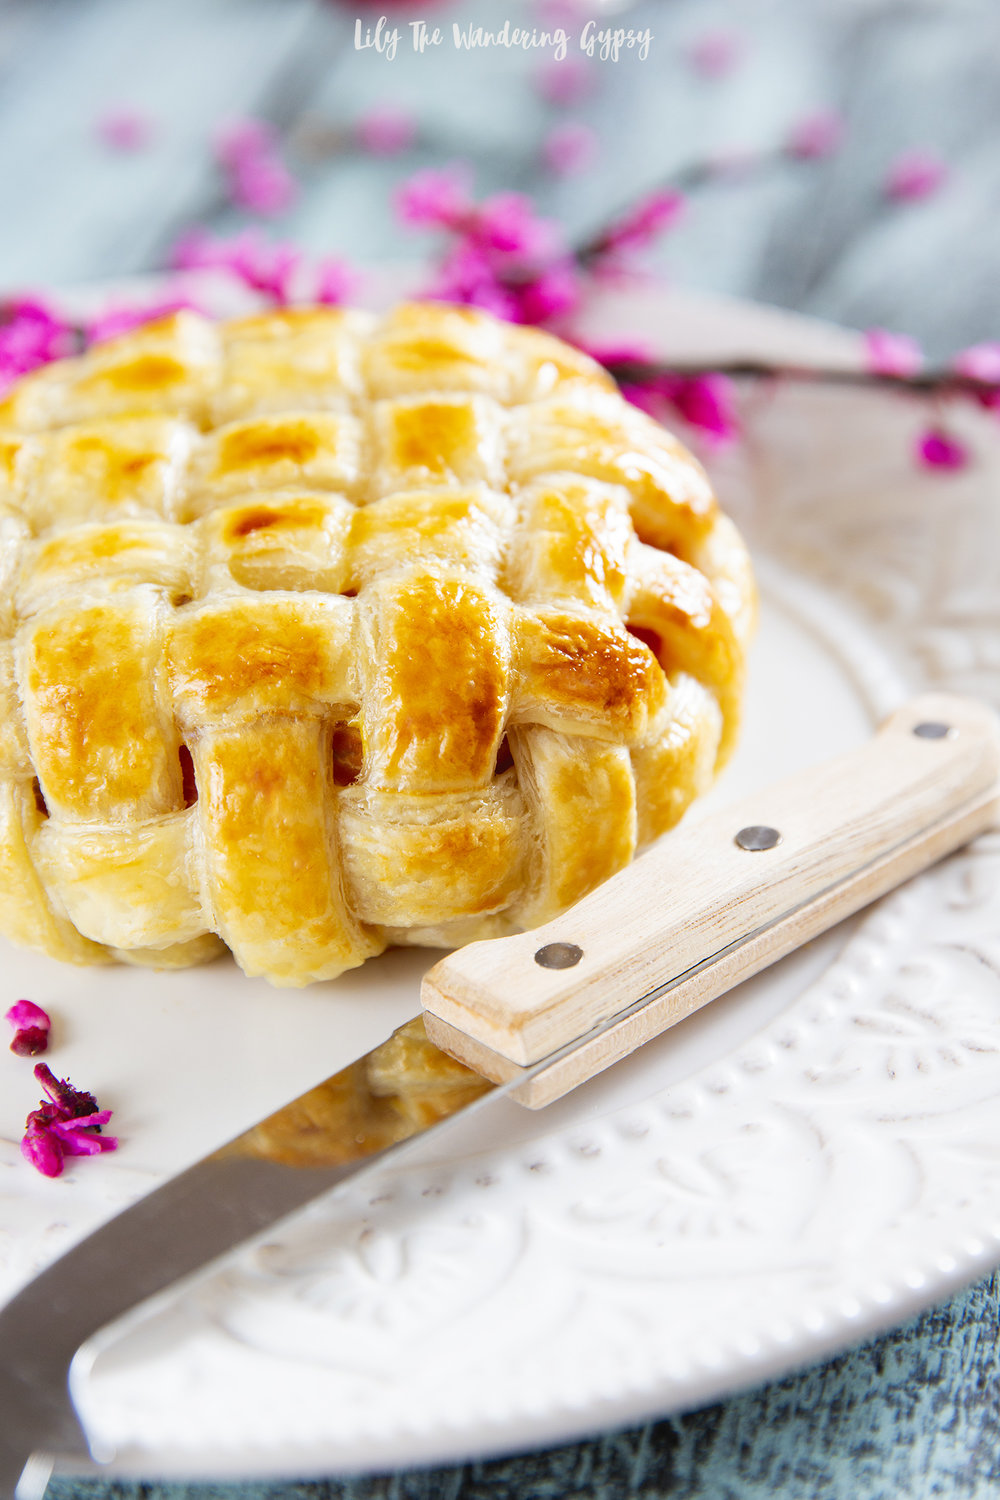 Lattice Weave Puff Pastry Wrapped Prosciutto + Brie Recipe